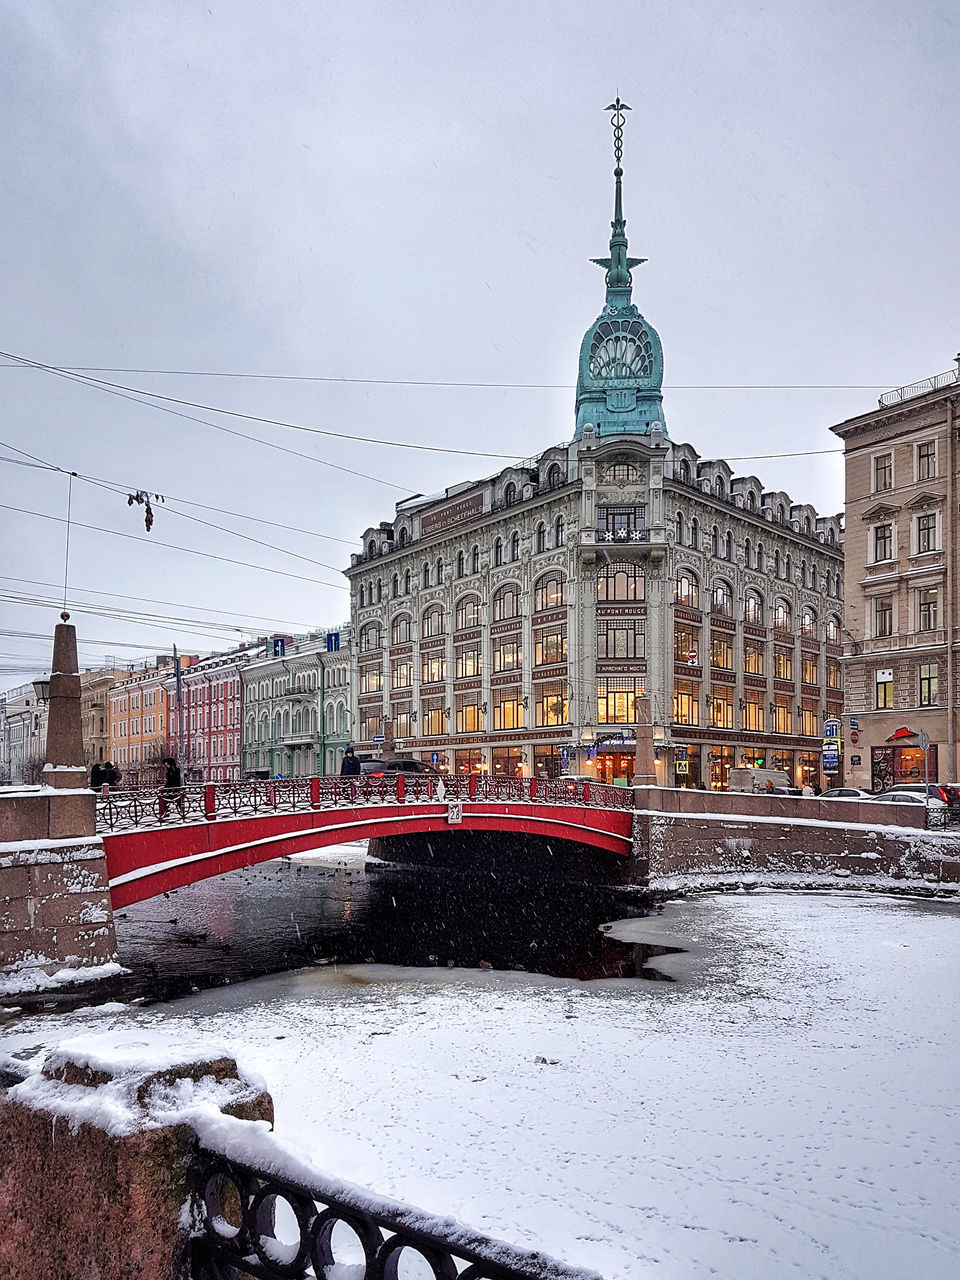 snow, winter, architecture, cold temperature, built structure, building exterior, weather, transportation, outdoors, sky, rail transportation, day, land vehicle, nature, no people, city, snowing